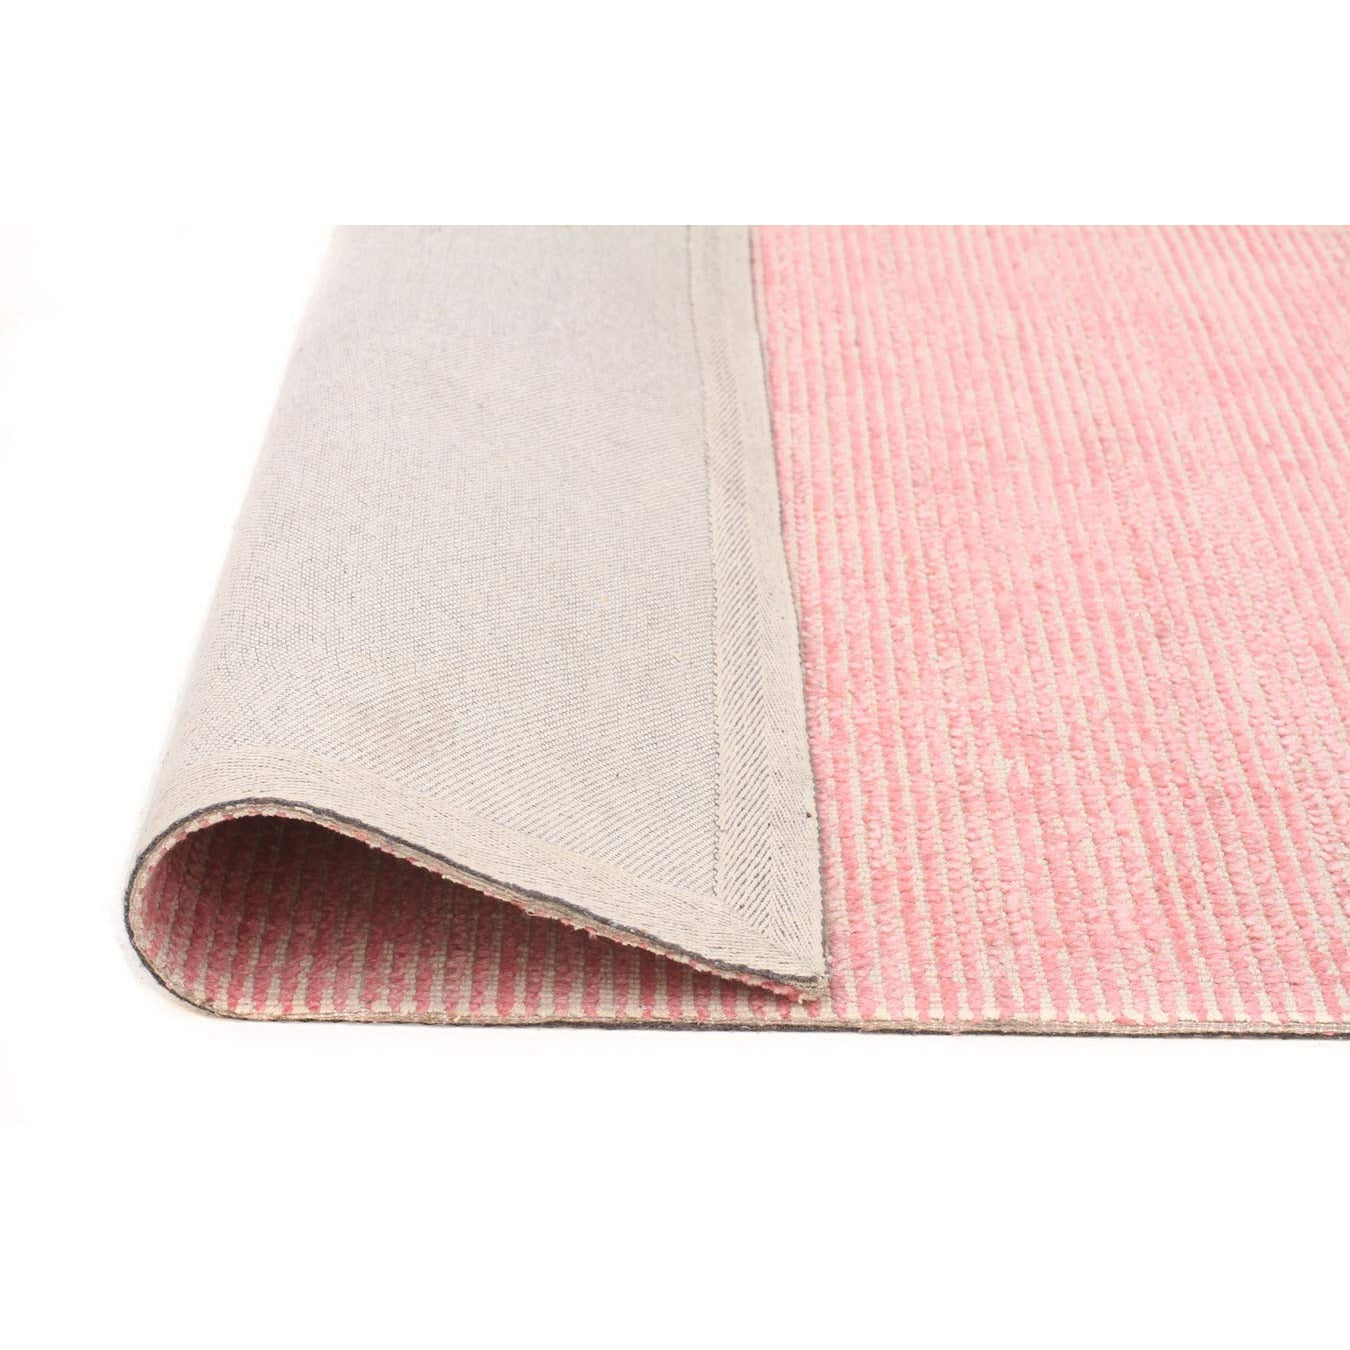 Londrina Rose Pink Modern Cut Loop Pile Rayon Cotton Rug